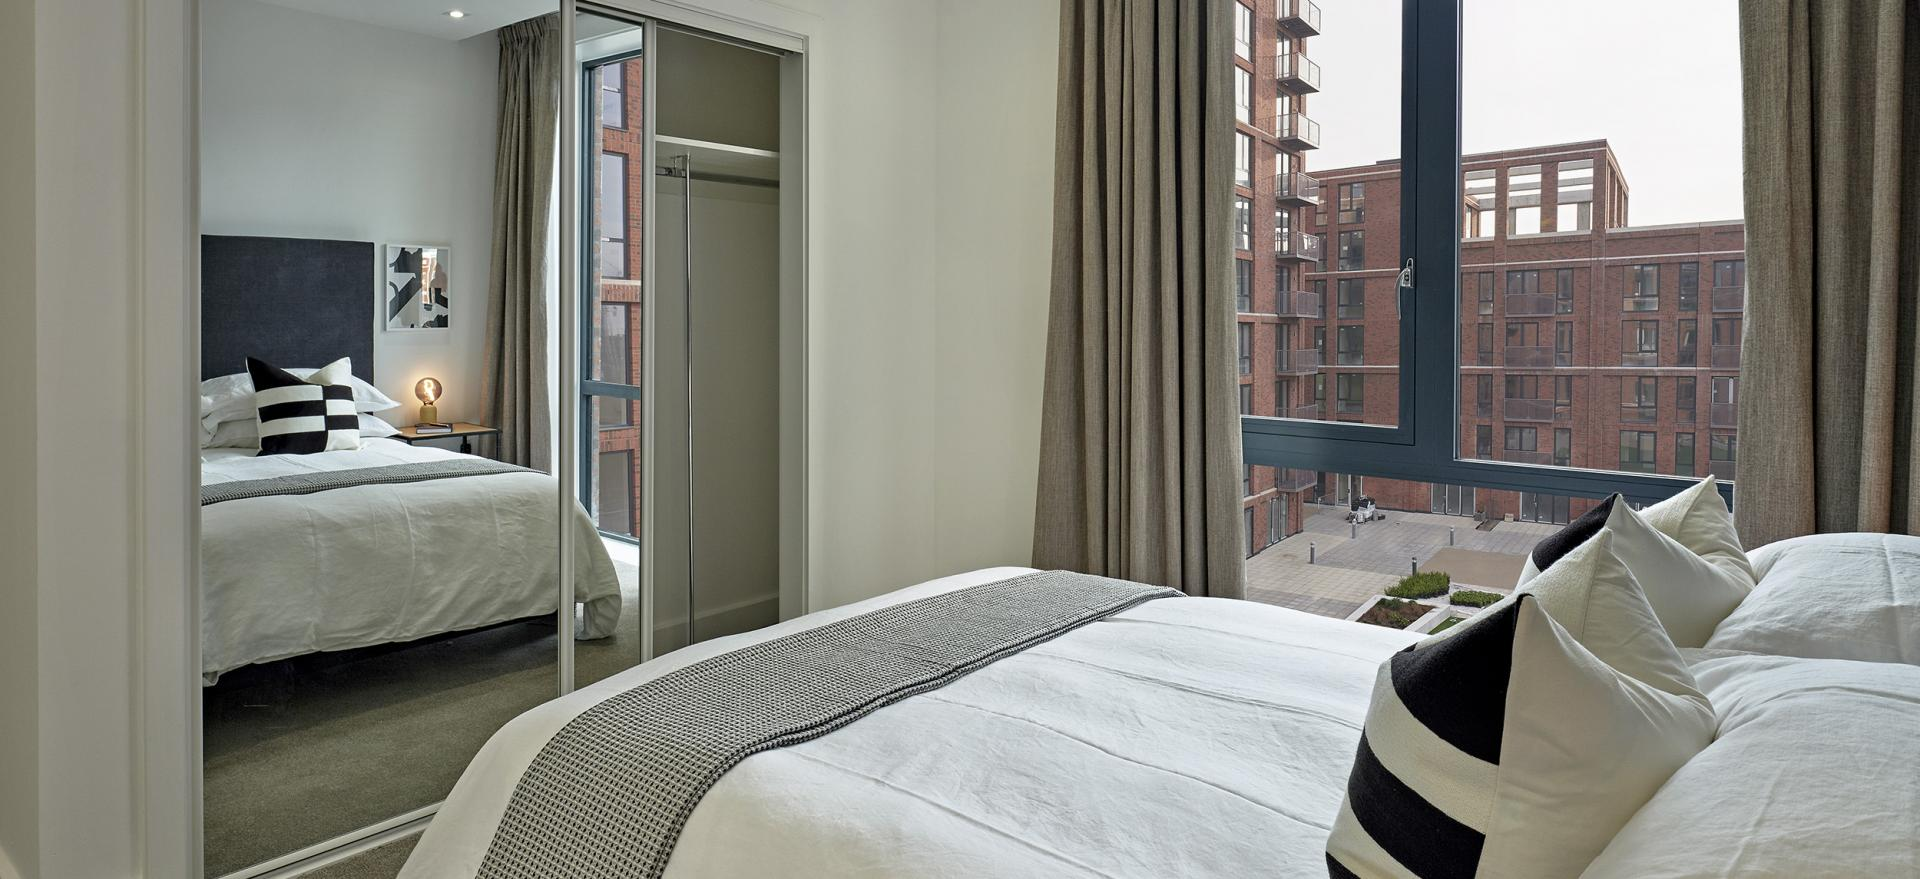 Bedroom at Manchester Media City Apartments By Charles Hope - Citybase Apartments